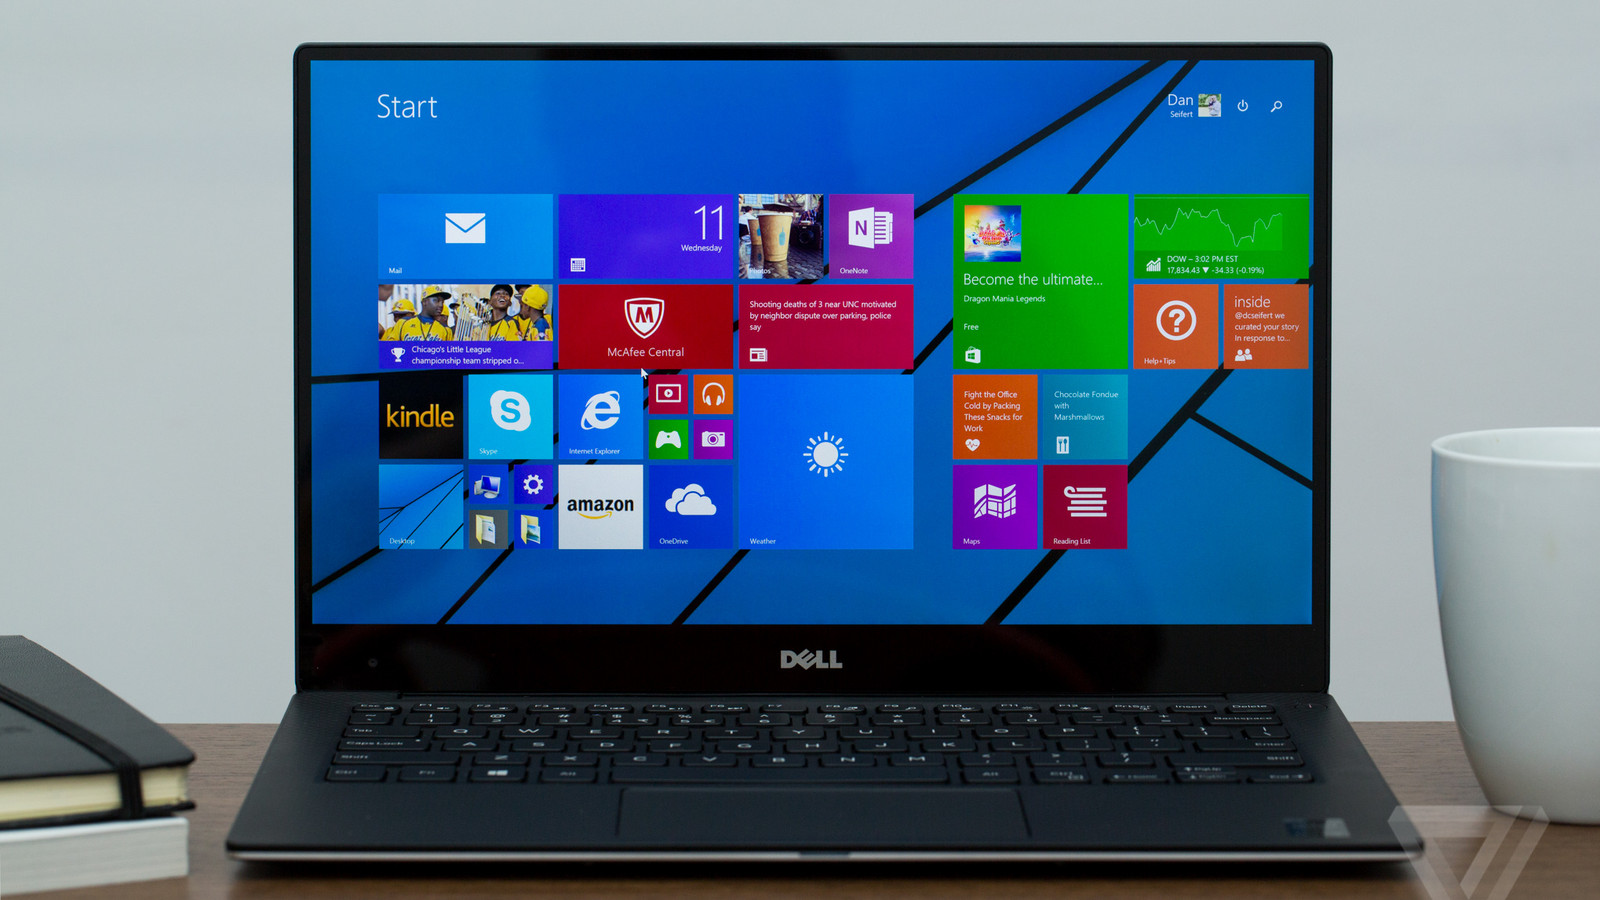 Dell S Xps 13 Is A Look At The Future Of Laptops The Verge